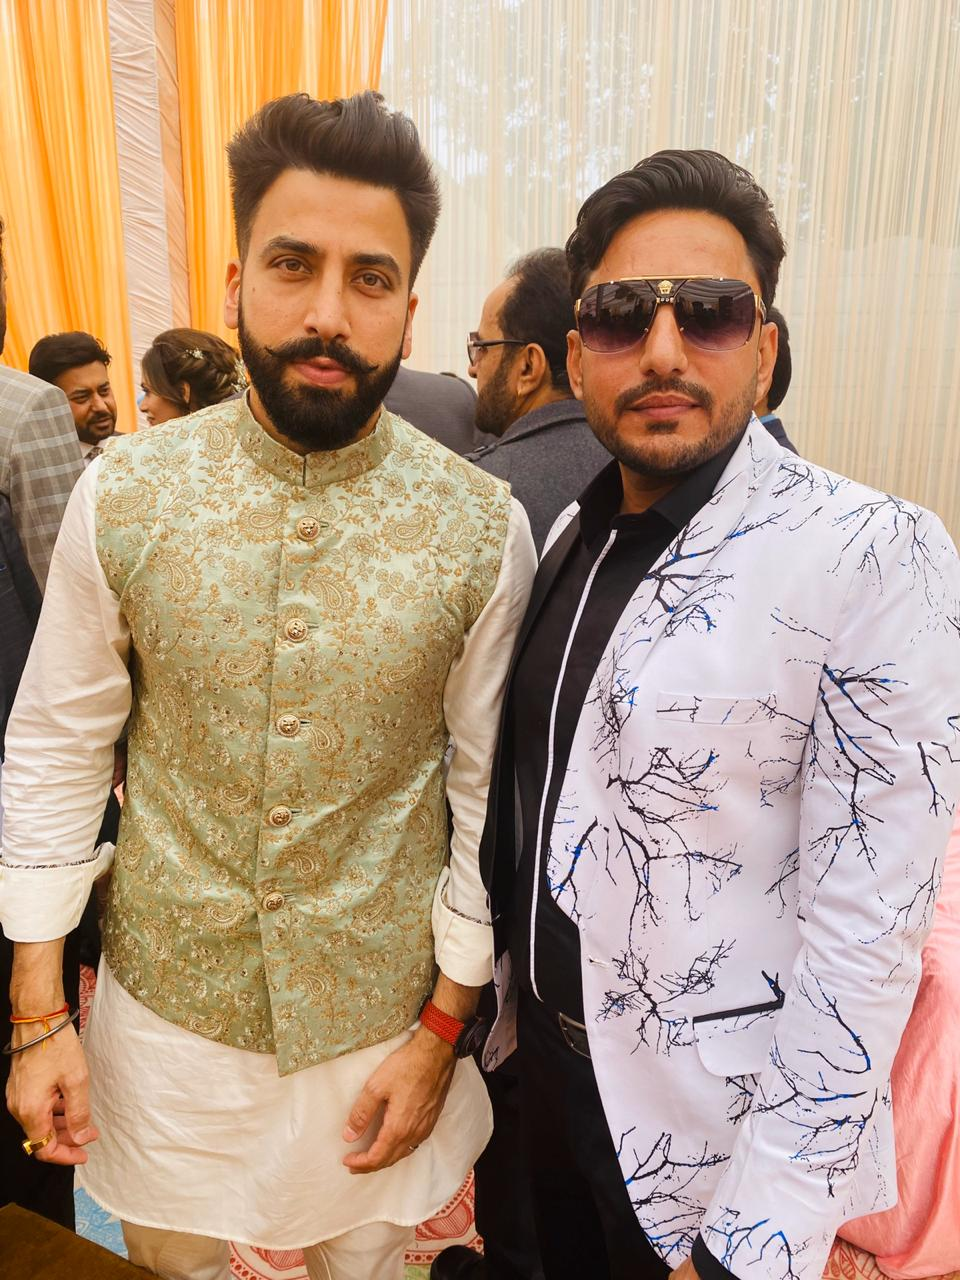 Gurdas Maan Son Marriage,family,gurikk maan,simran kaur mundi,photo